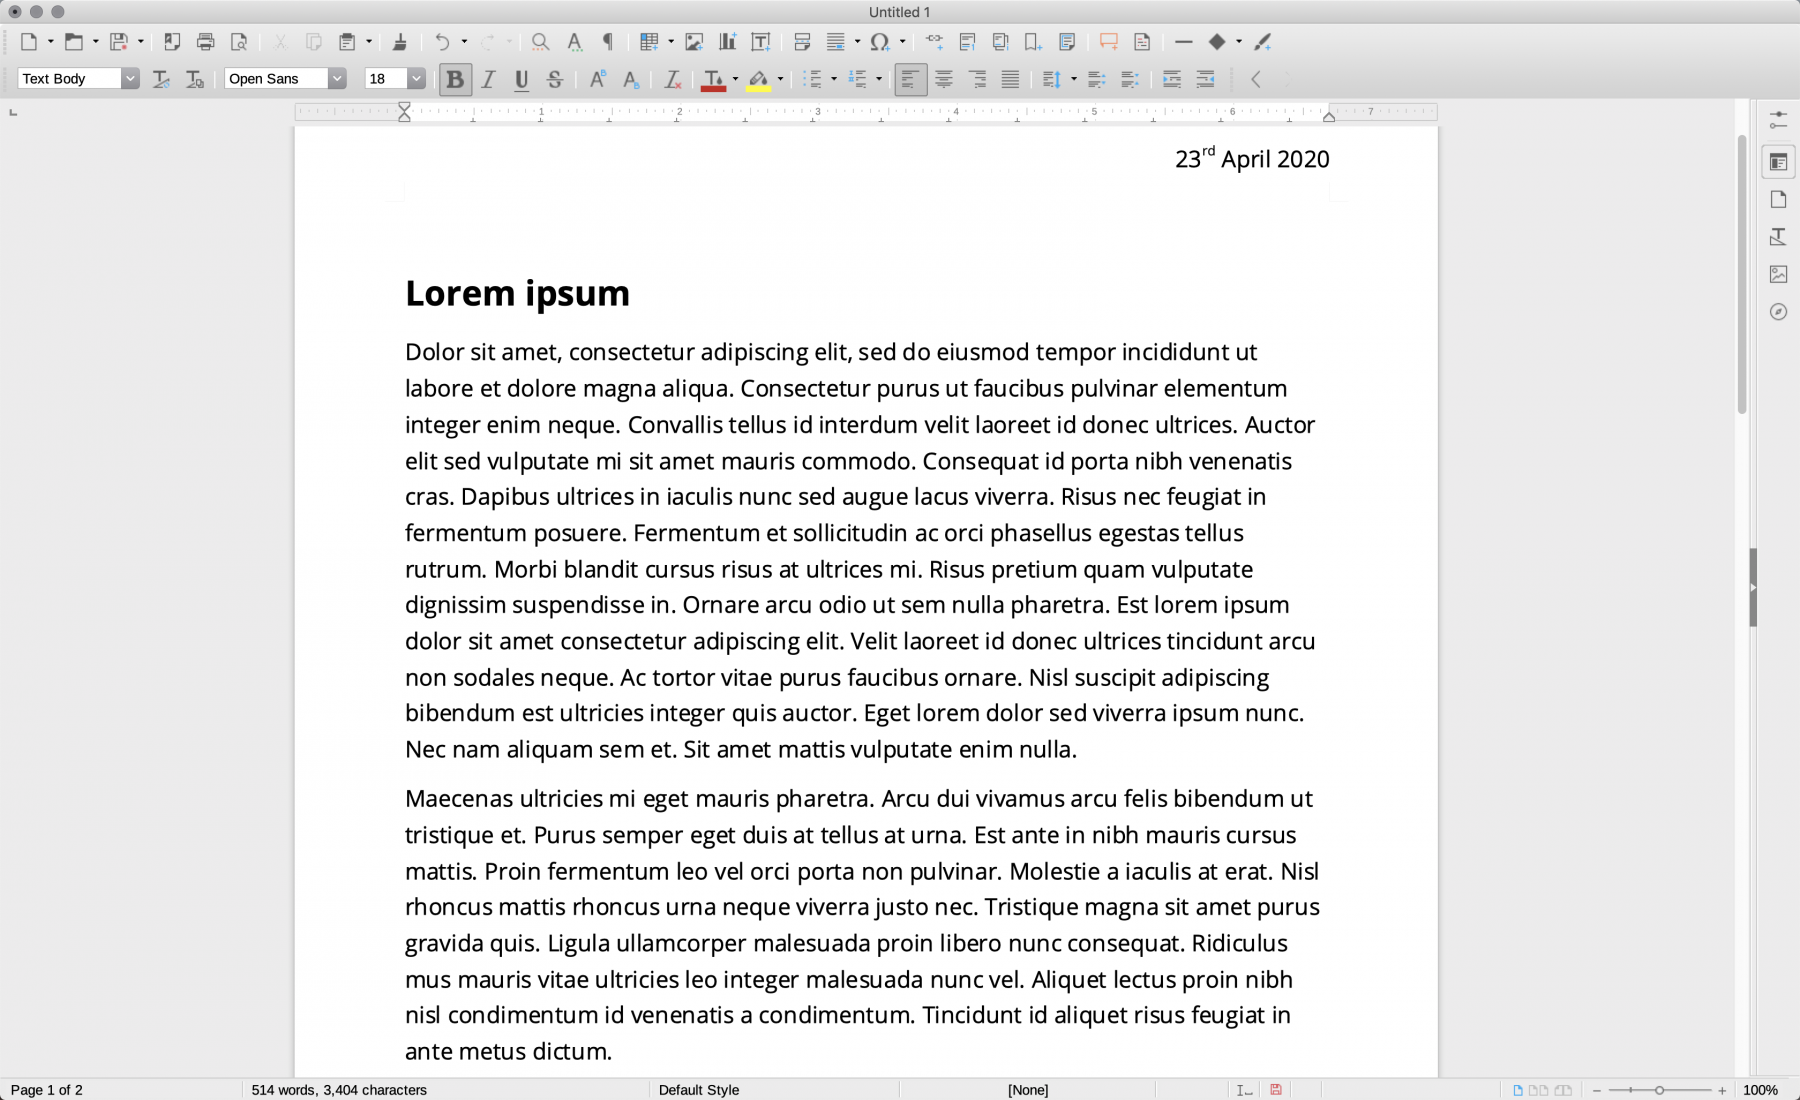 Screenshot of LibreOffice's word processing tool